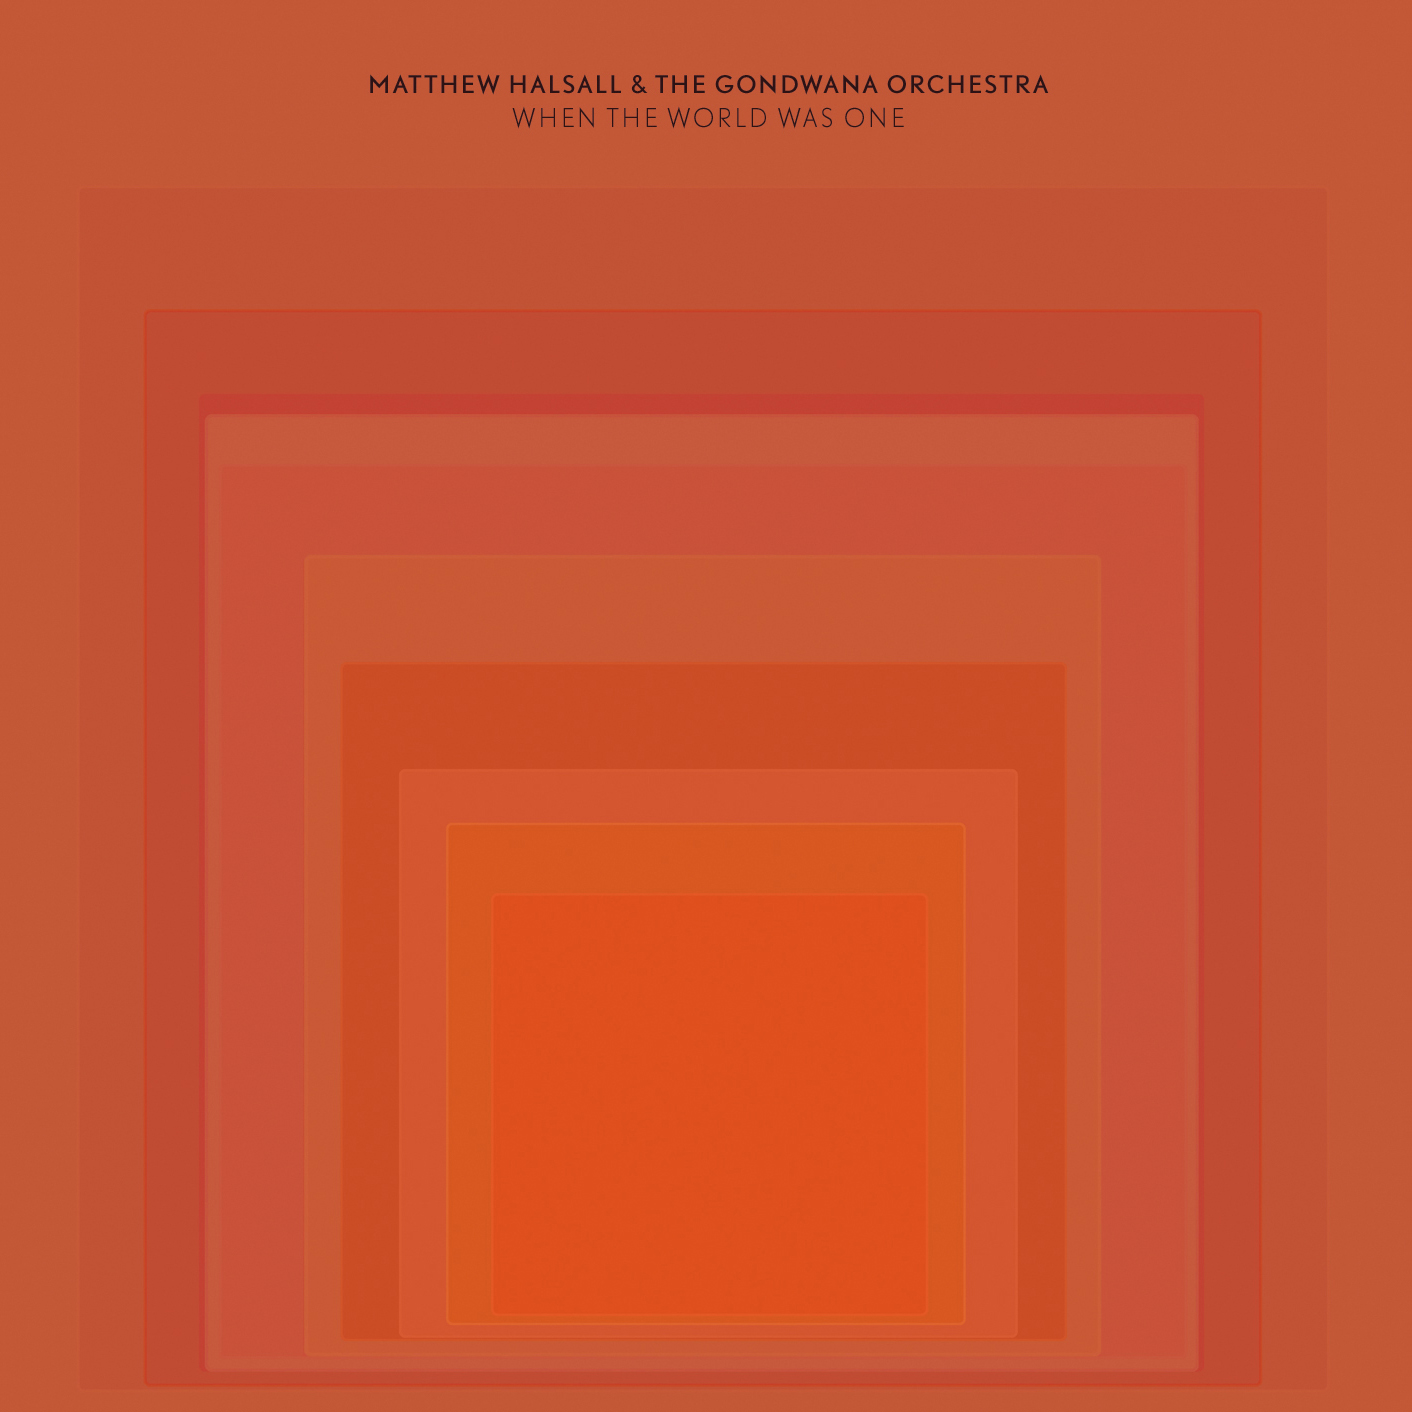 GONCD010 - Matthew Halsall & The Gondwana Orchestra - When The World Was One (Final Digital Cover) 2014